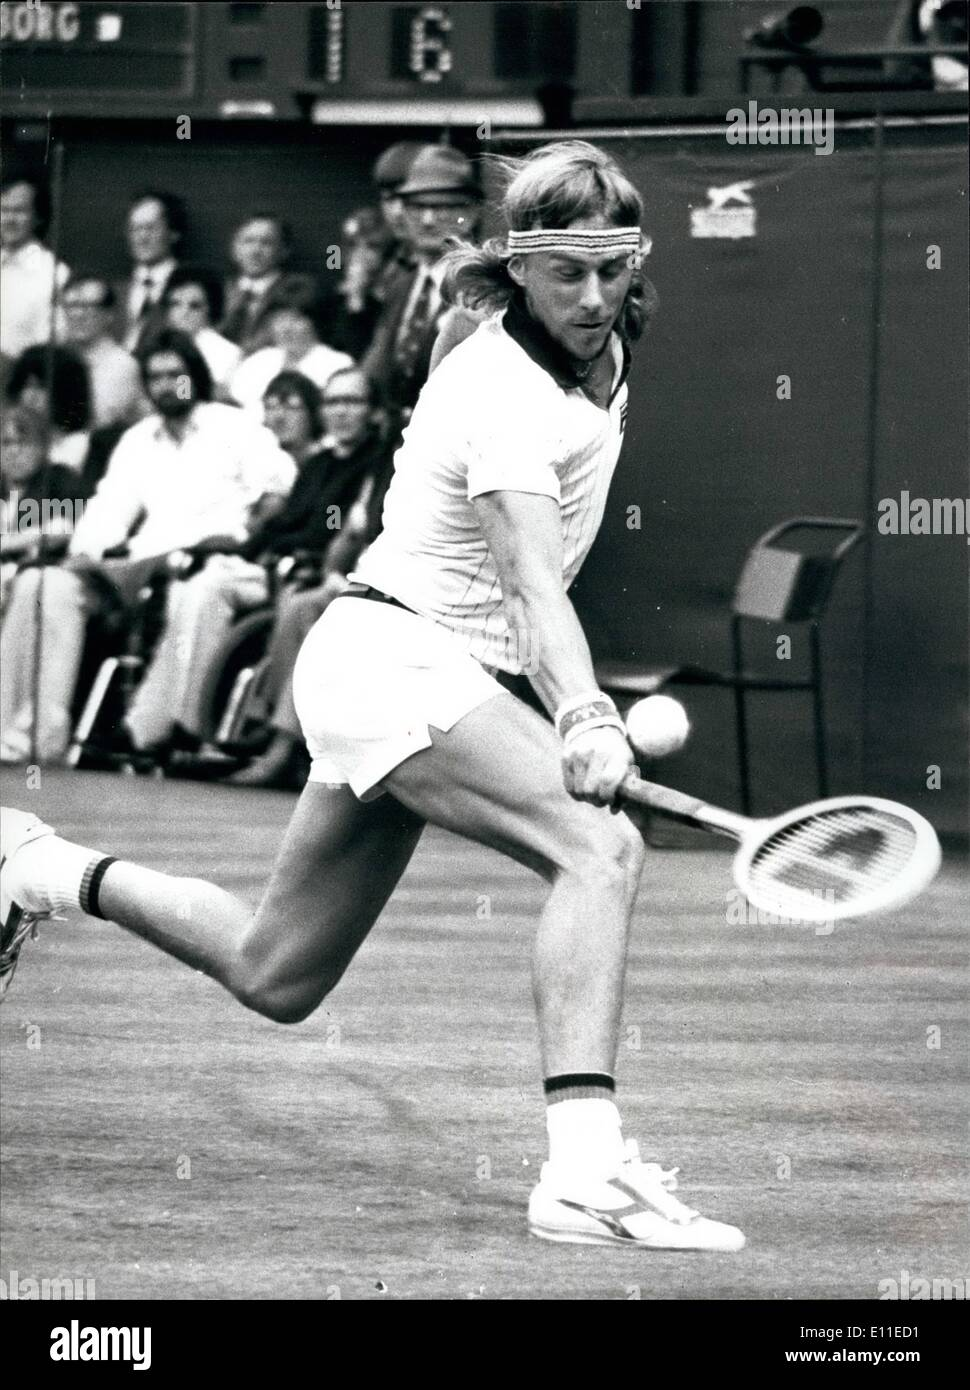 Jun 06 1977 Bjorn Borg Beats Ilie Nastase In The Quarter